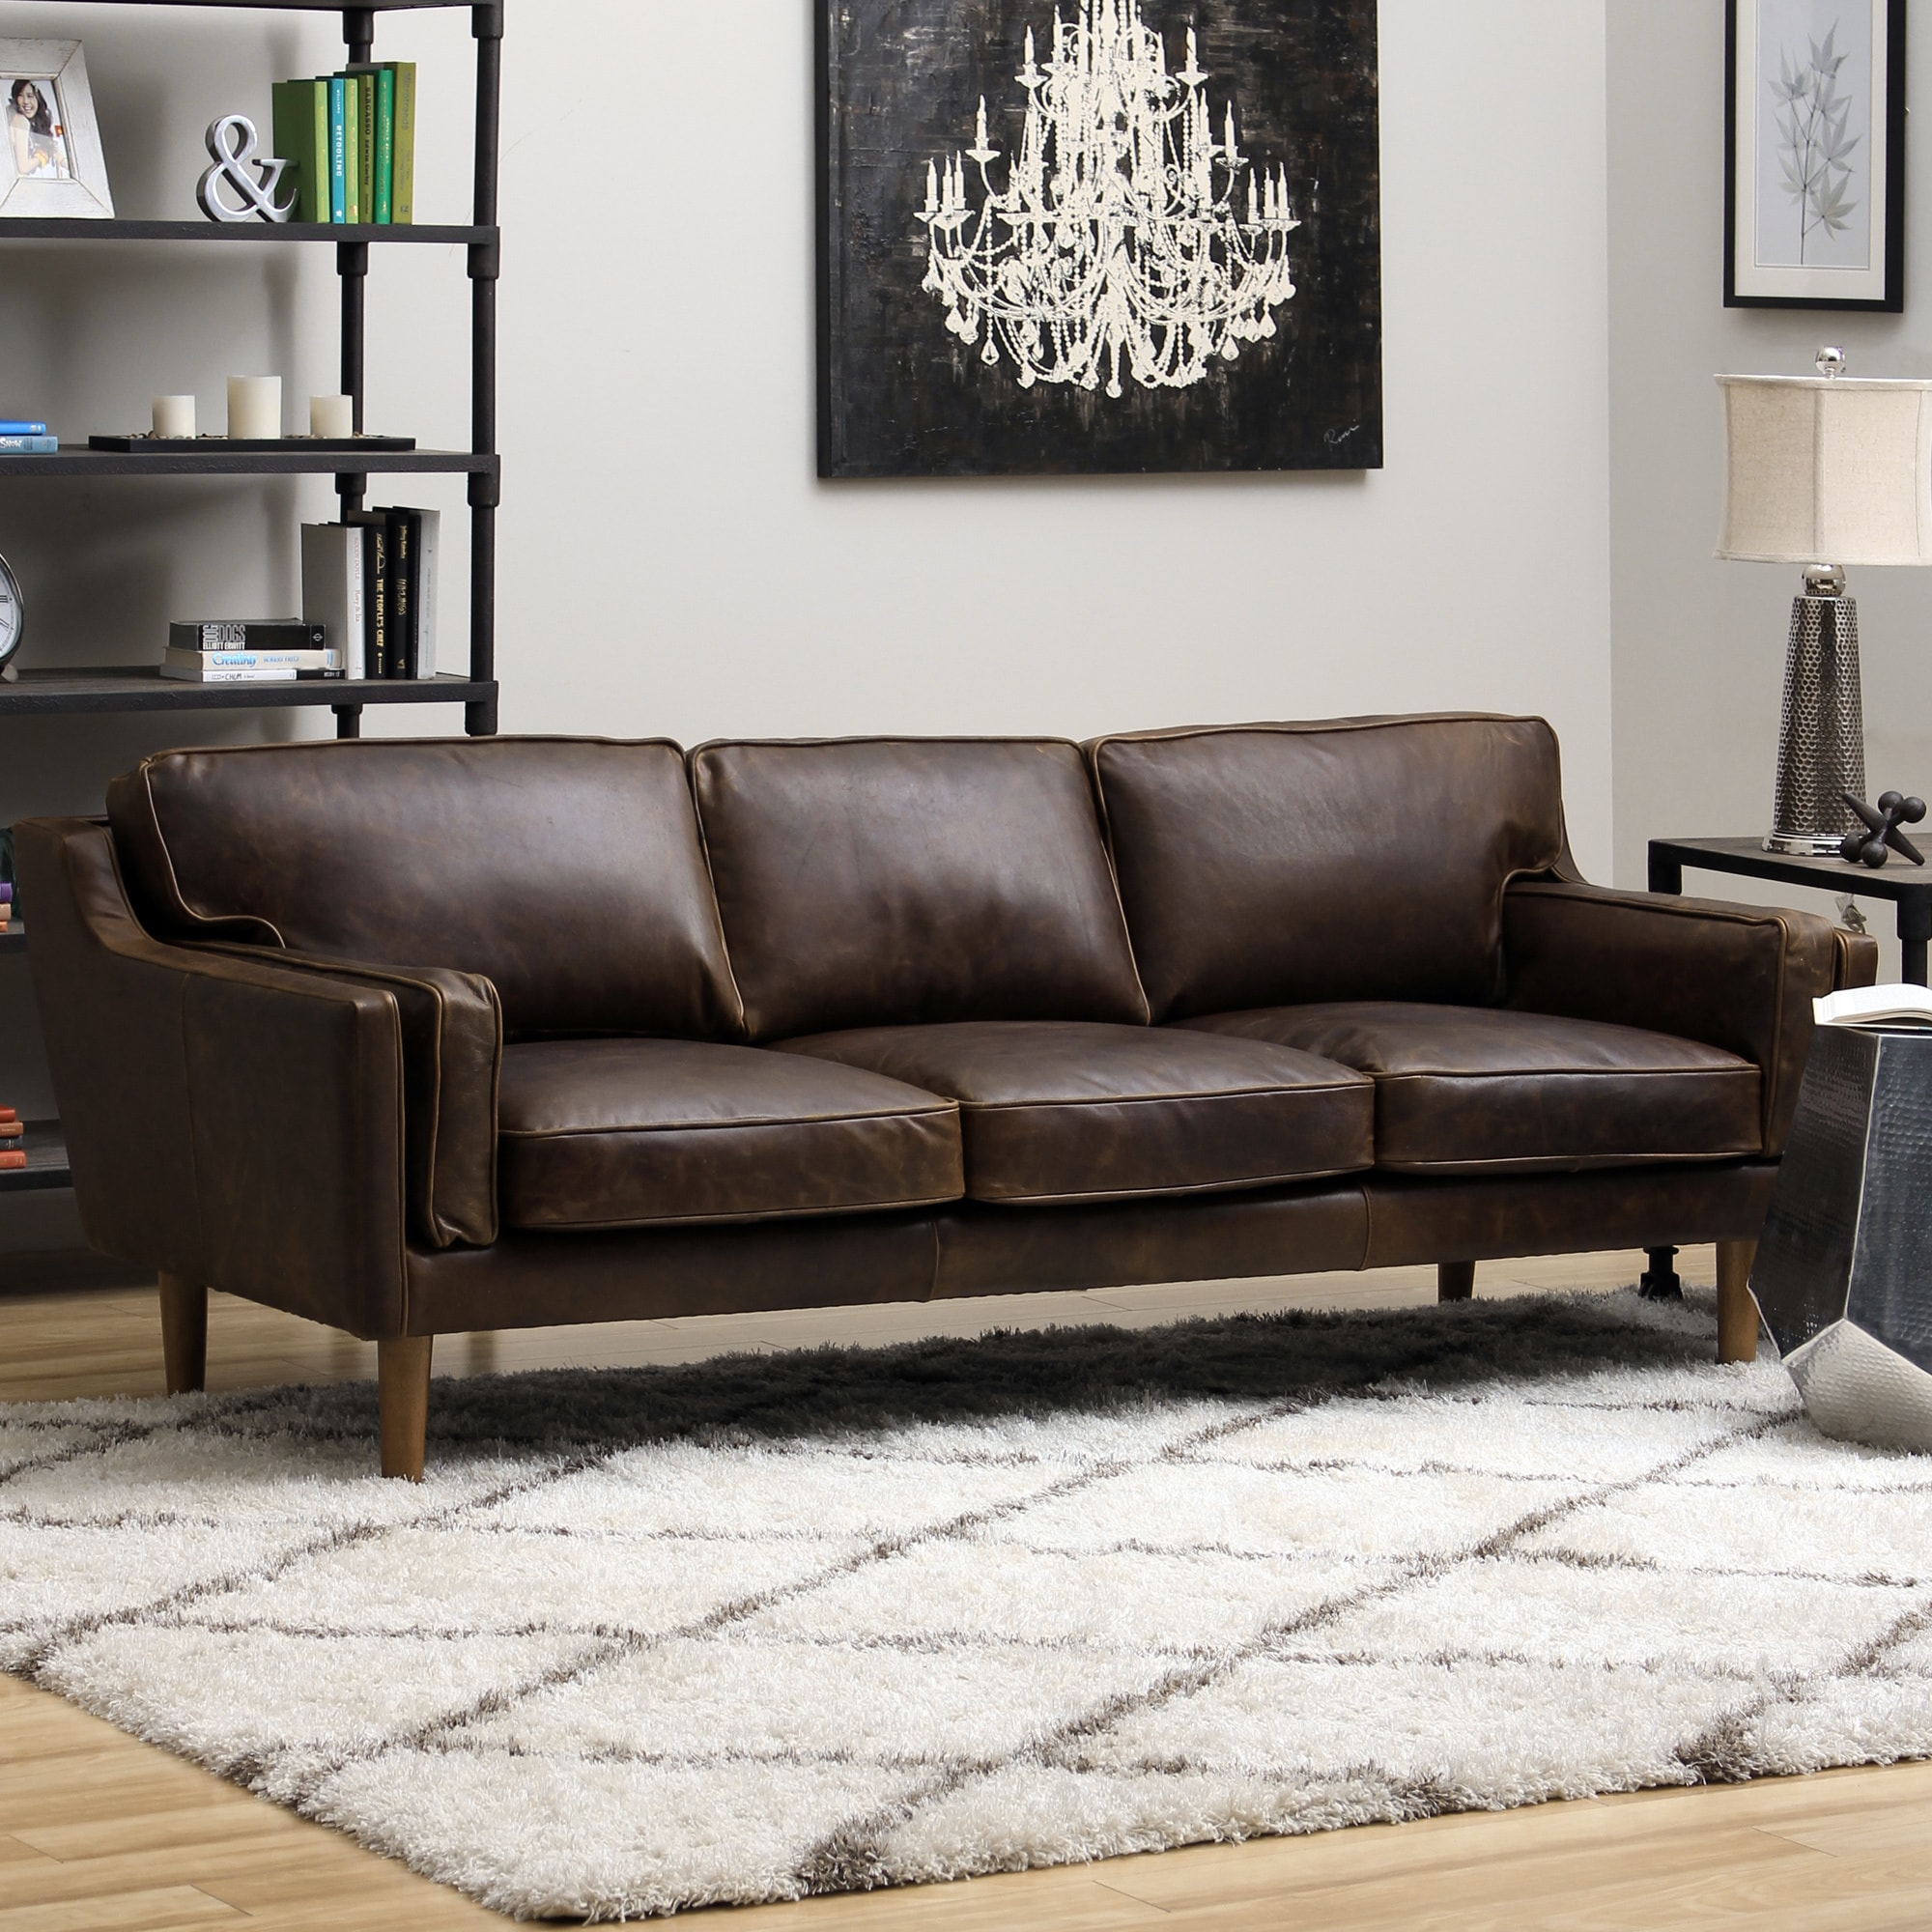 1cheap beatnik leather sofa columbus chocolate cheap living room furniture 2015. Black Bedroom Furniture Sets. Home Design Ideas